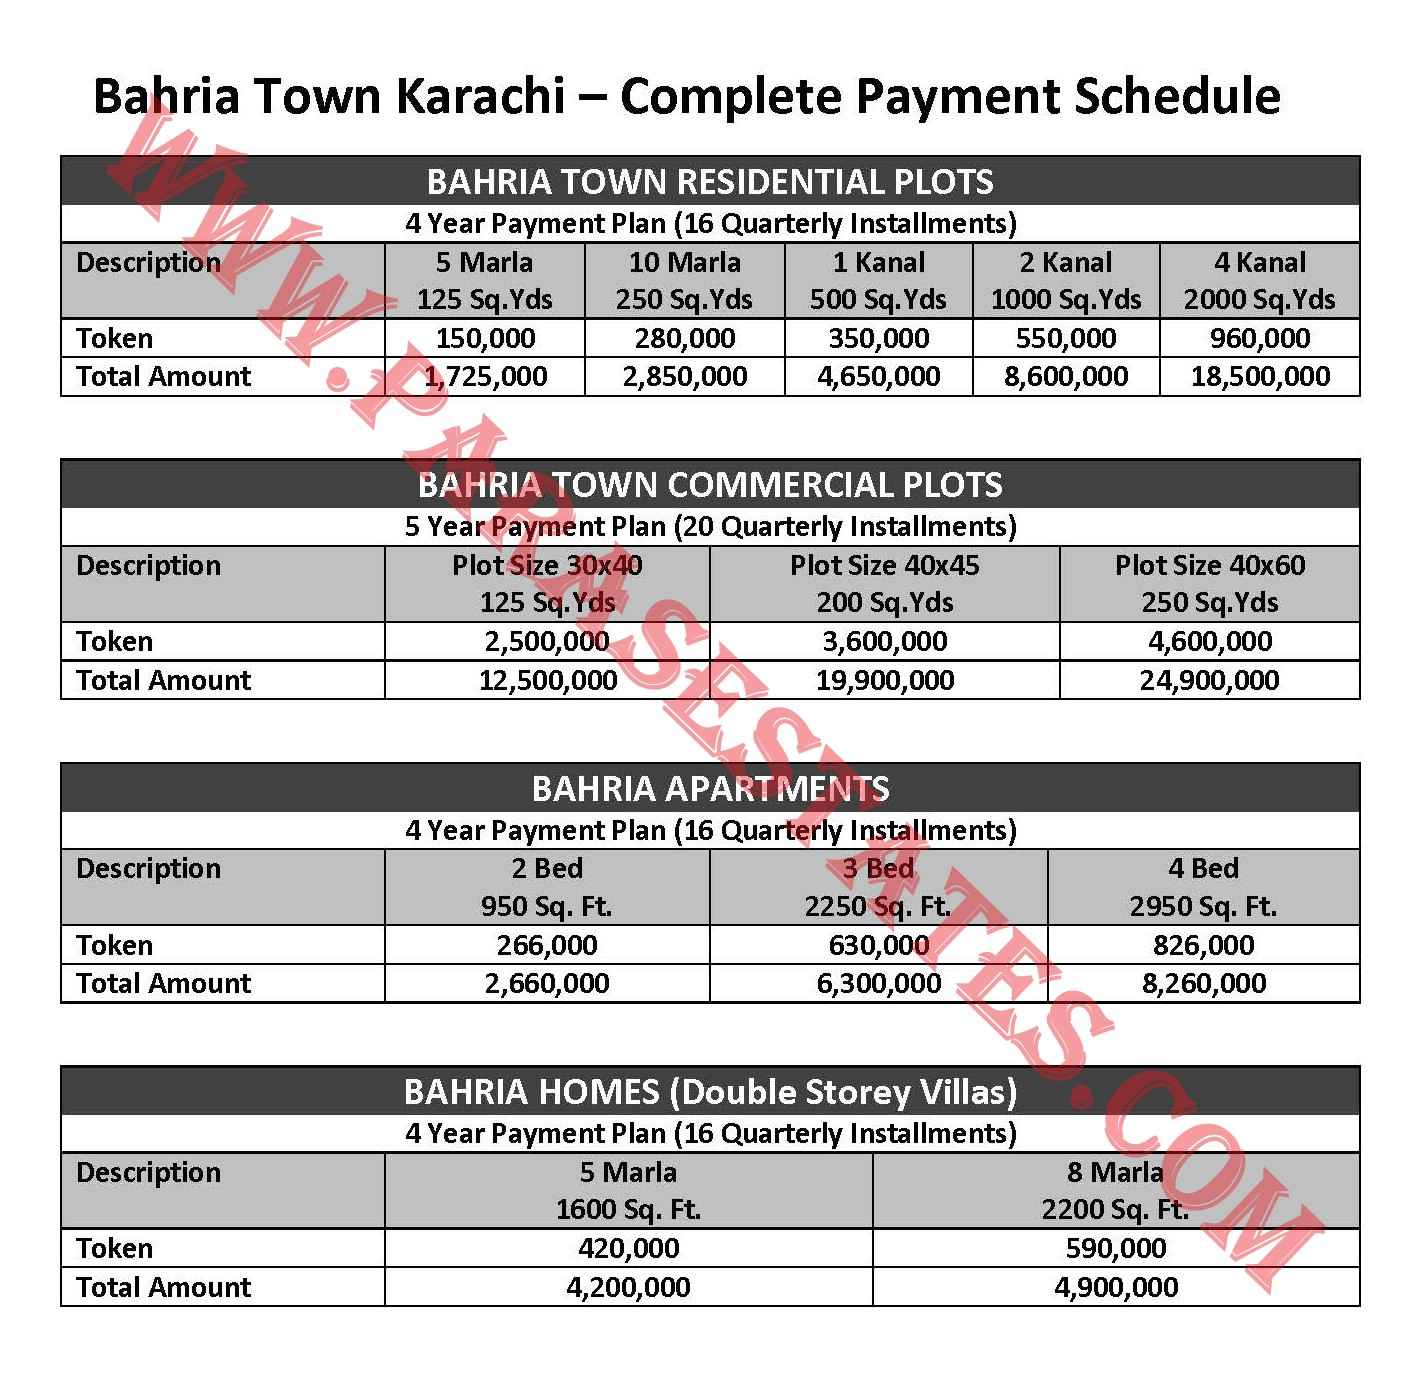 Bahria Town Karachi Complete Payment Schedule